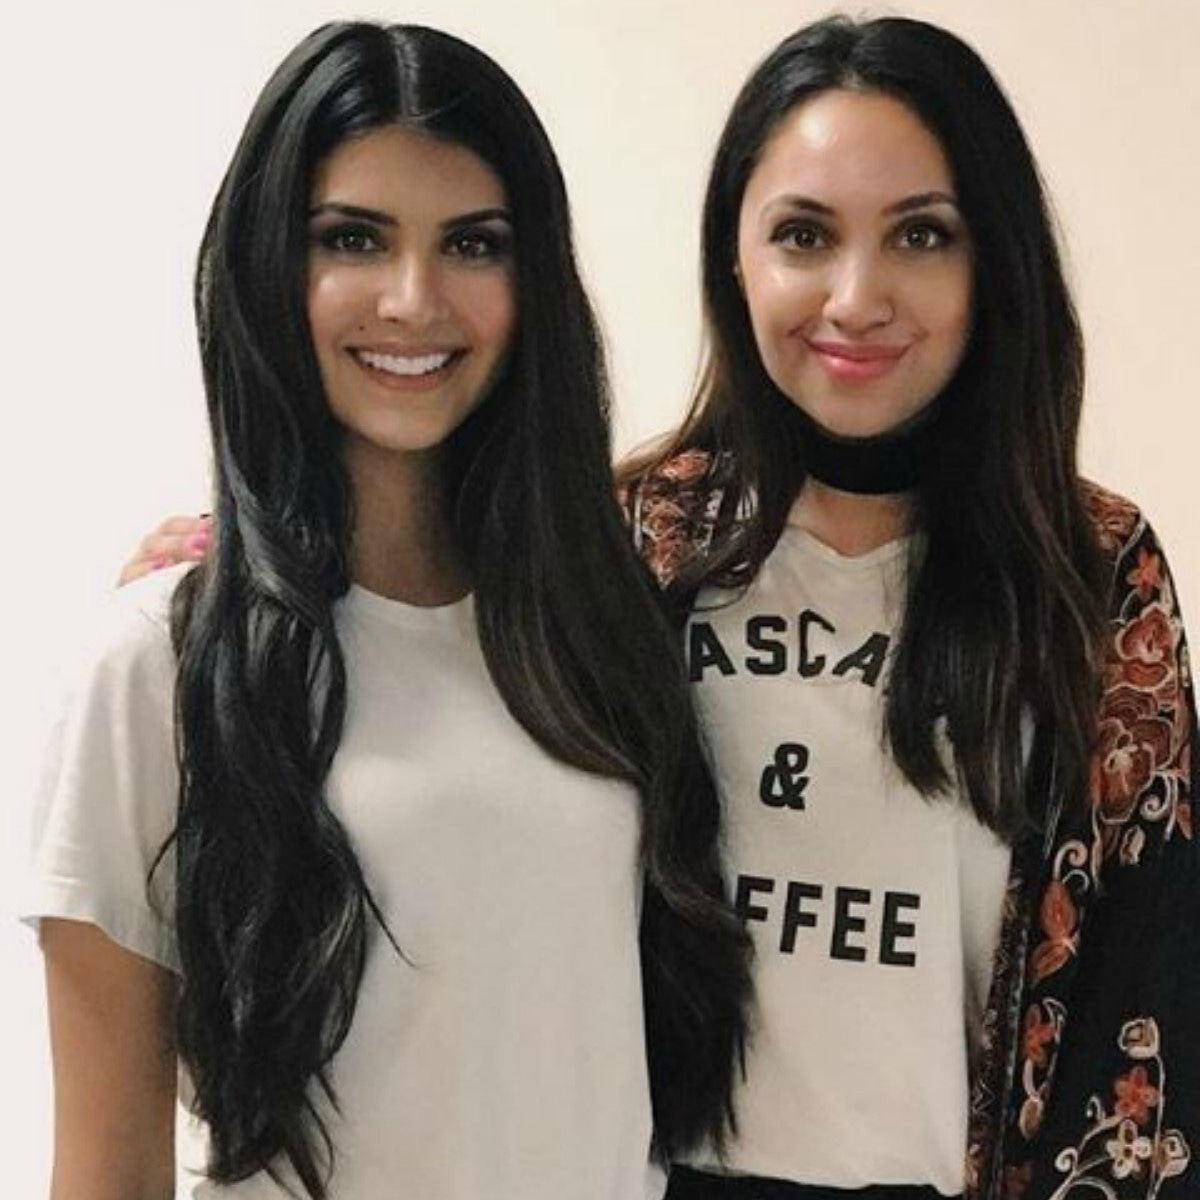 Badmaash Beauty is the dream project of Mariam Shah and Beena Alvi